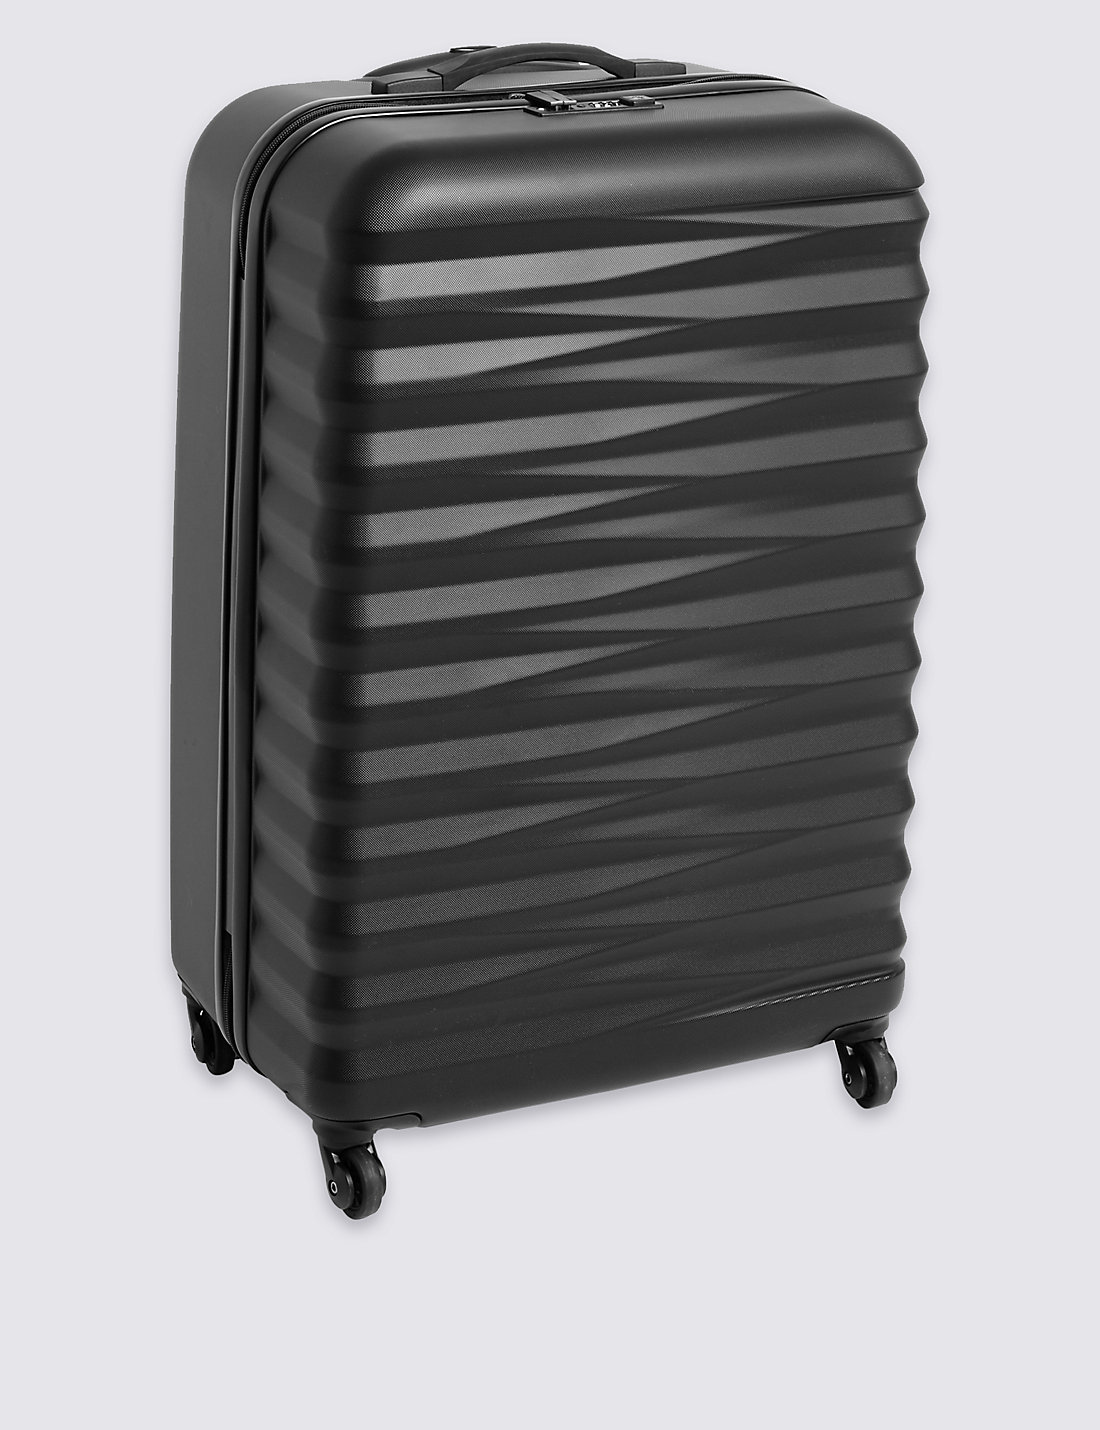 Large 4 Wheel Essential Hard Suitcase with Security Zip | M&S